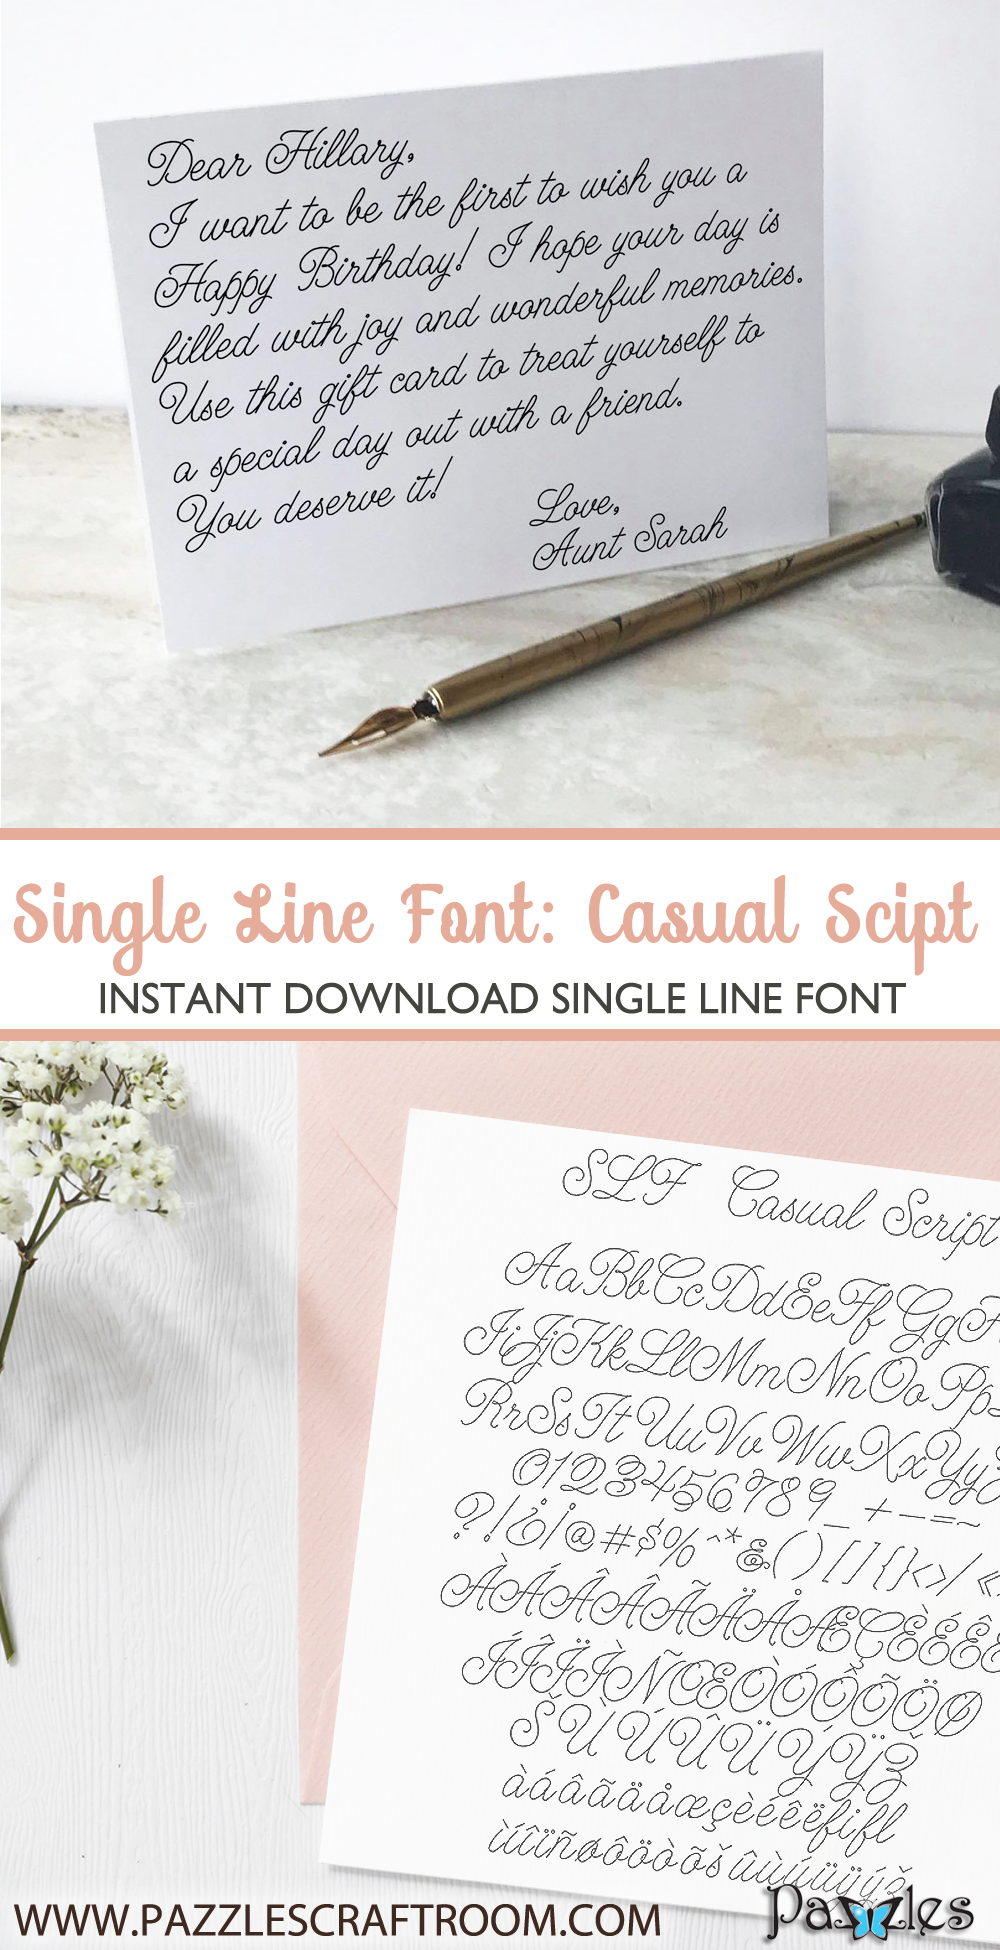 Pazzles Casual Script Single Line Font with instant download. Compatible with all major electronic cutters including Pazzles Inspiration, Cricut, and Silhouette Cameo. Design by Leslie Peppers.